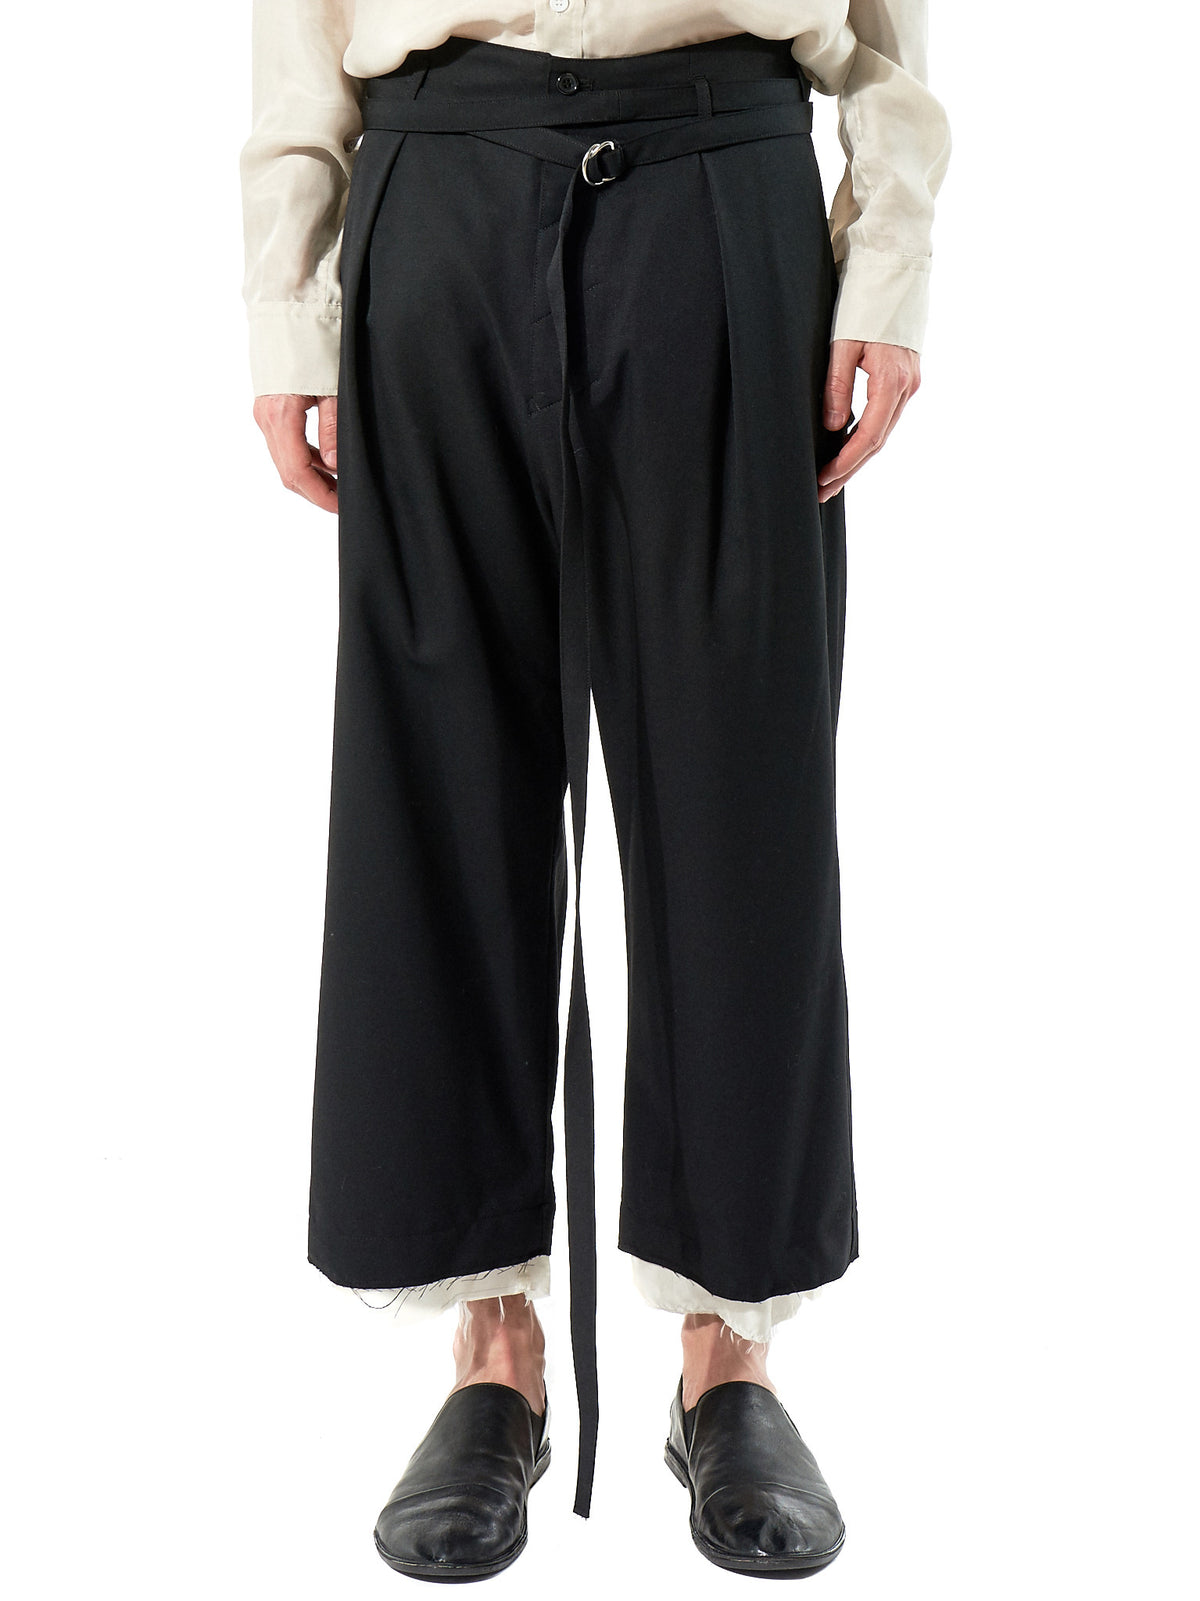 Deconstructed Black Trouser (SF-P01-100 BLACK) - H. Lorenzo